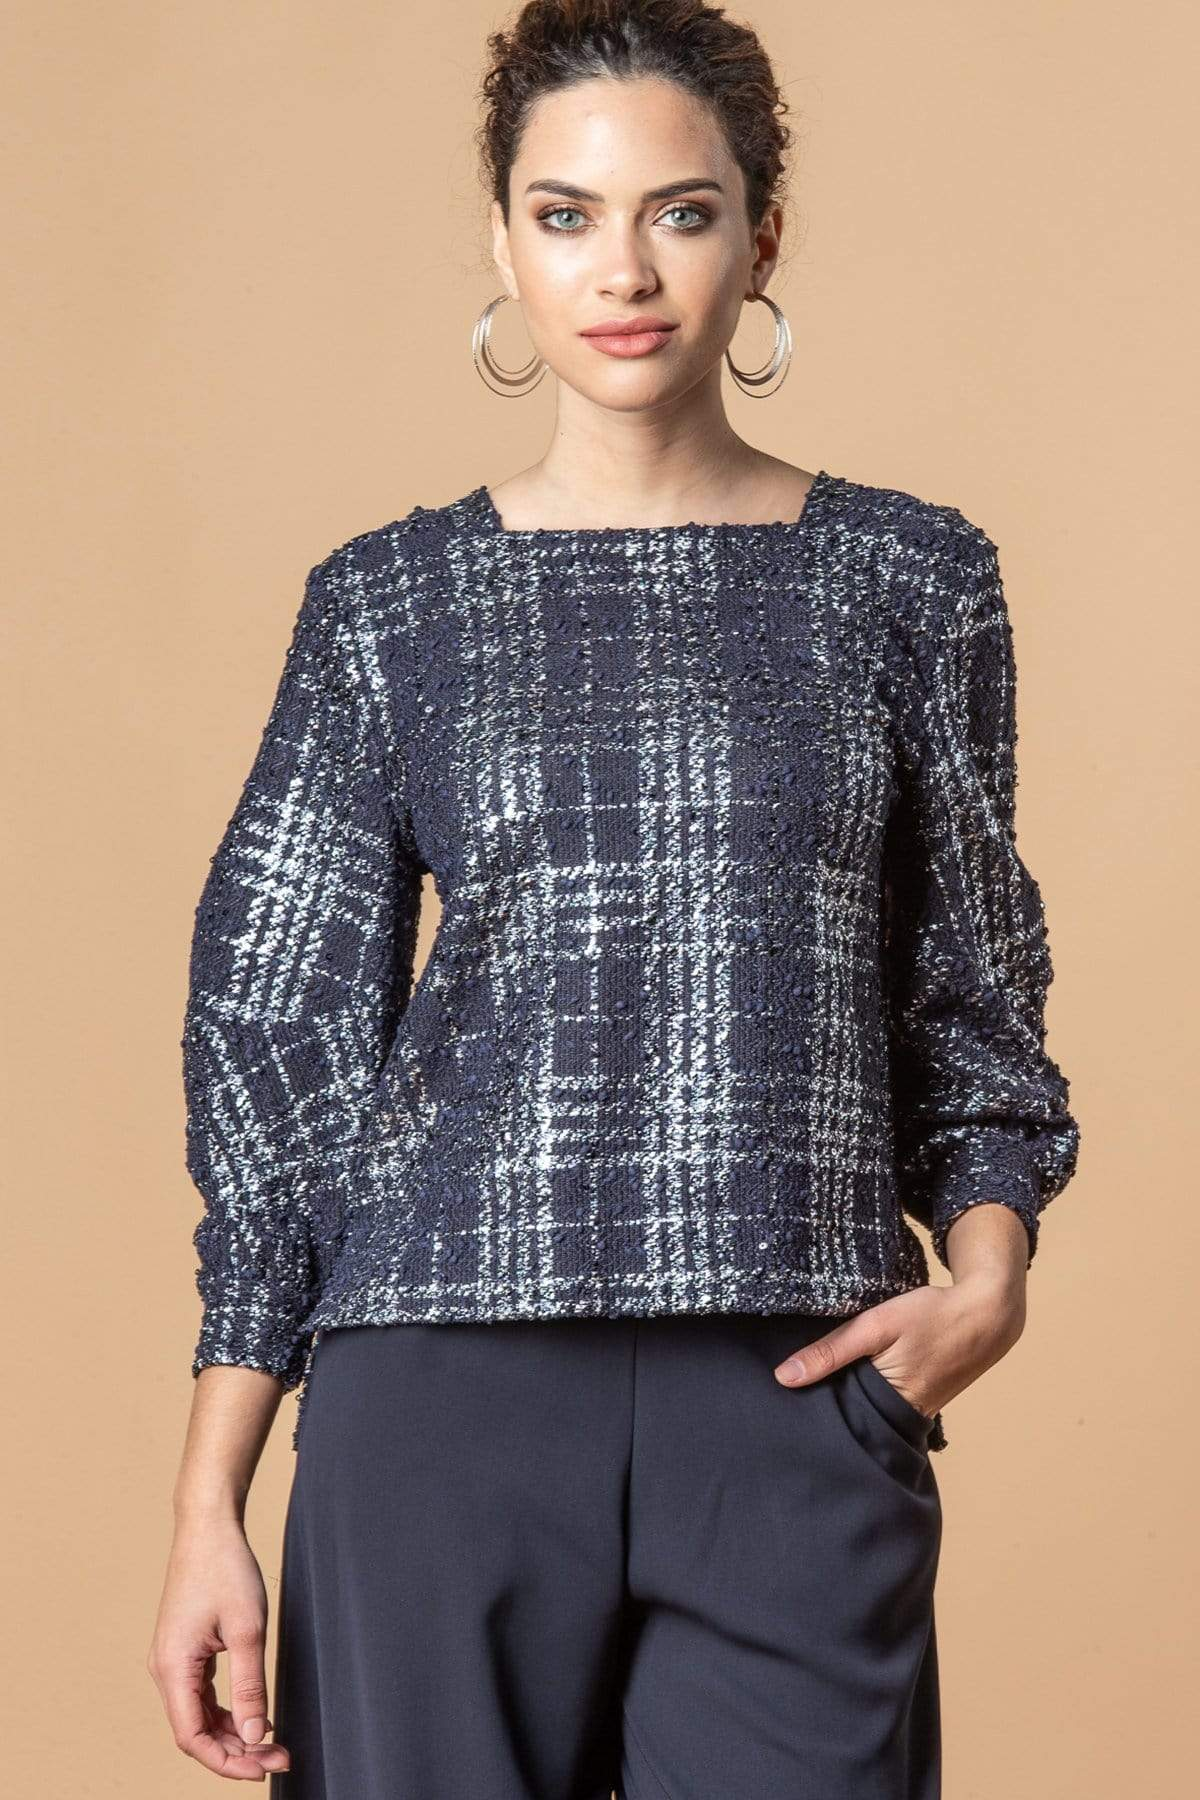 Eva Franco Top April Top - Midnight Paris